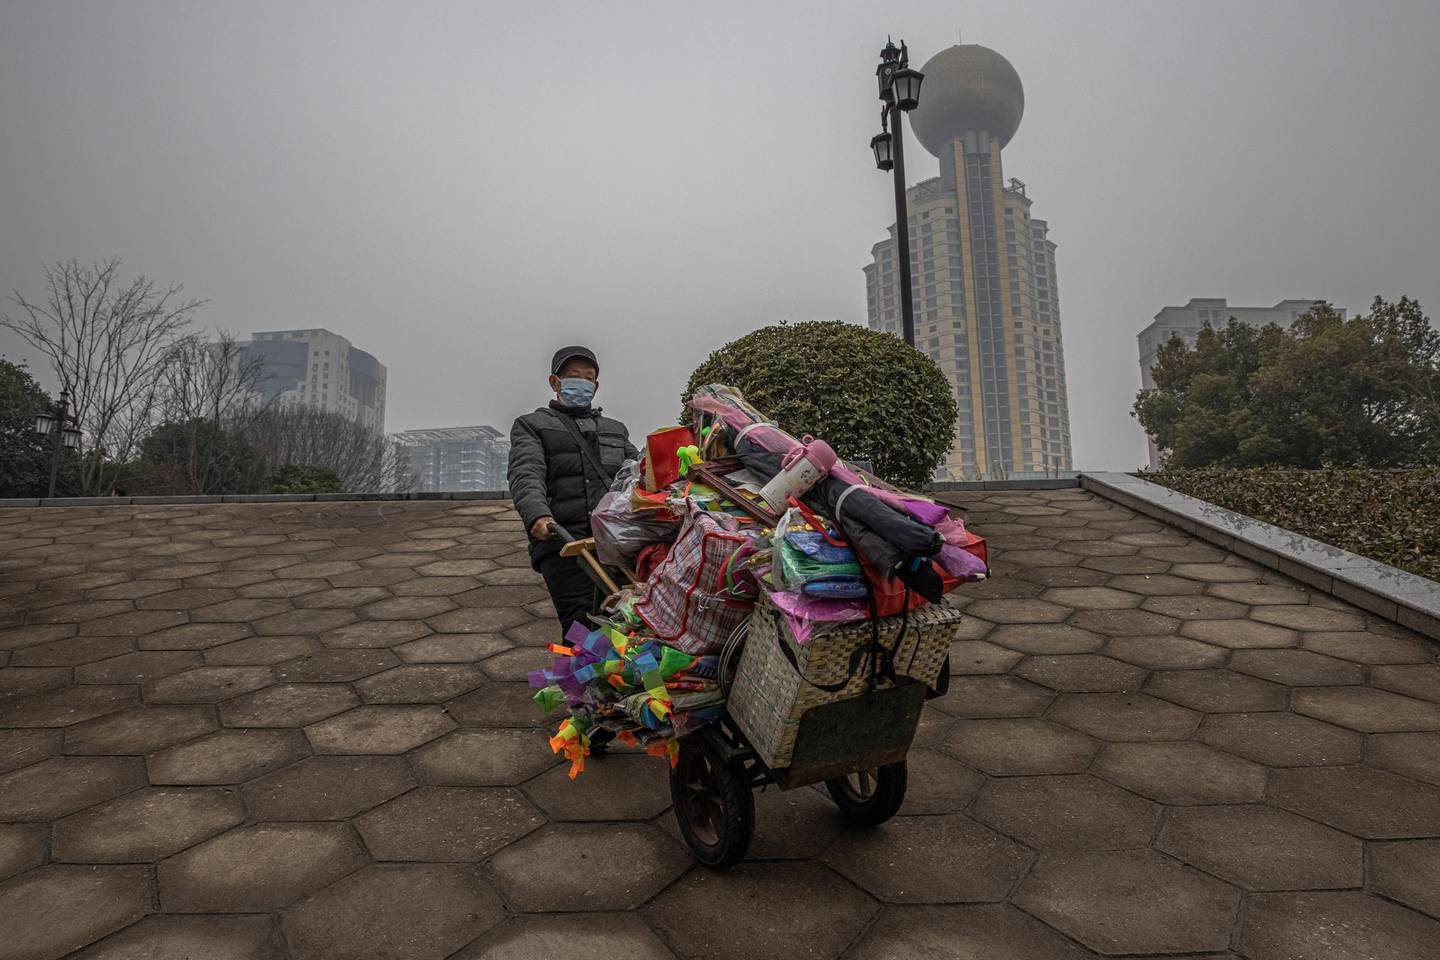 epa08959237 A seller pushes his cart at a riverside park along the Yangtze River on the day of Wuhan's lockdown one-year anniversary, in Wuhan, China, 23 January 2021. The day 23 January 2021 marks the one-year anniversary of the start of a strict 76-day lockdown of the Chinese city of Wuhan, where the novel coronavirus SARS-CoV-2 that causes the COVID-19 disease, was first discovered before spreading across the world into a deadly global pandemic.  EPA/ROMAN PILIPEY